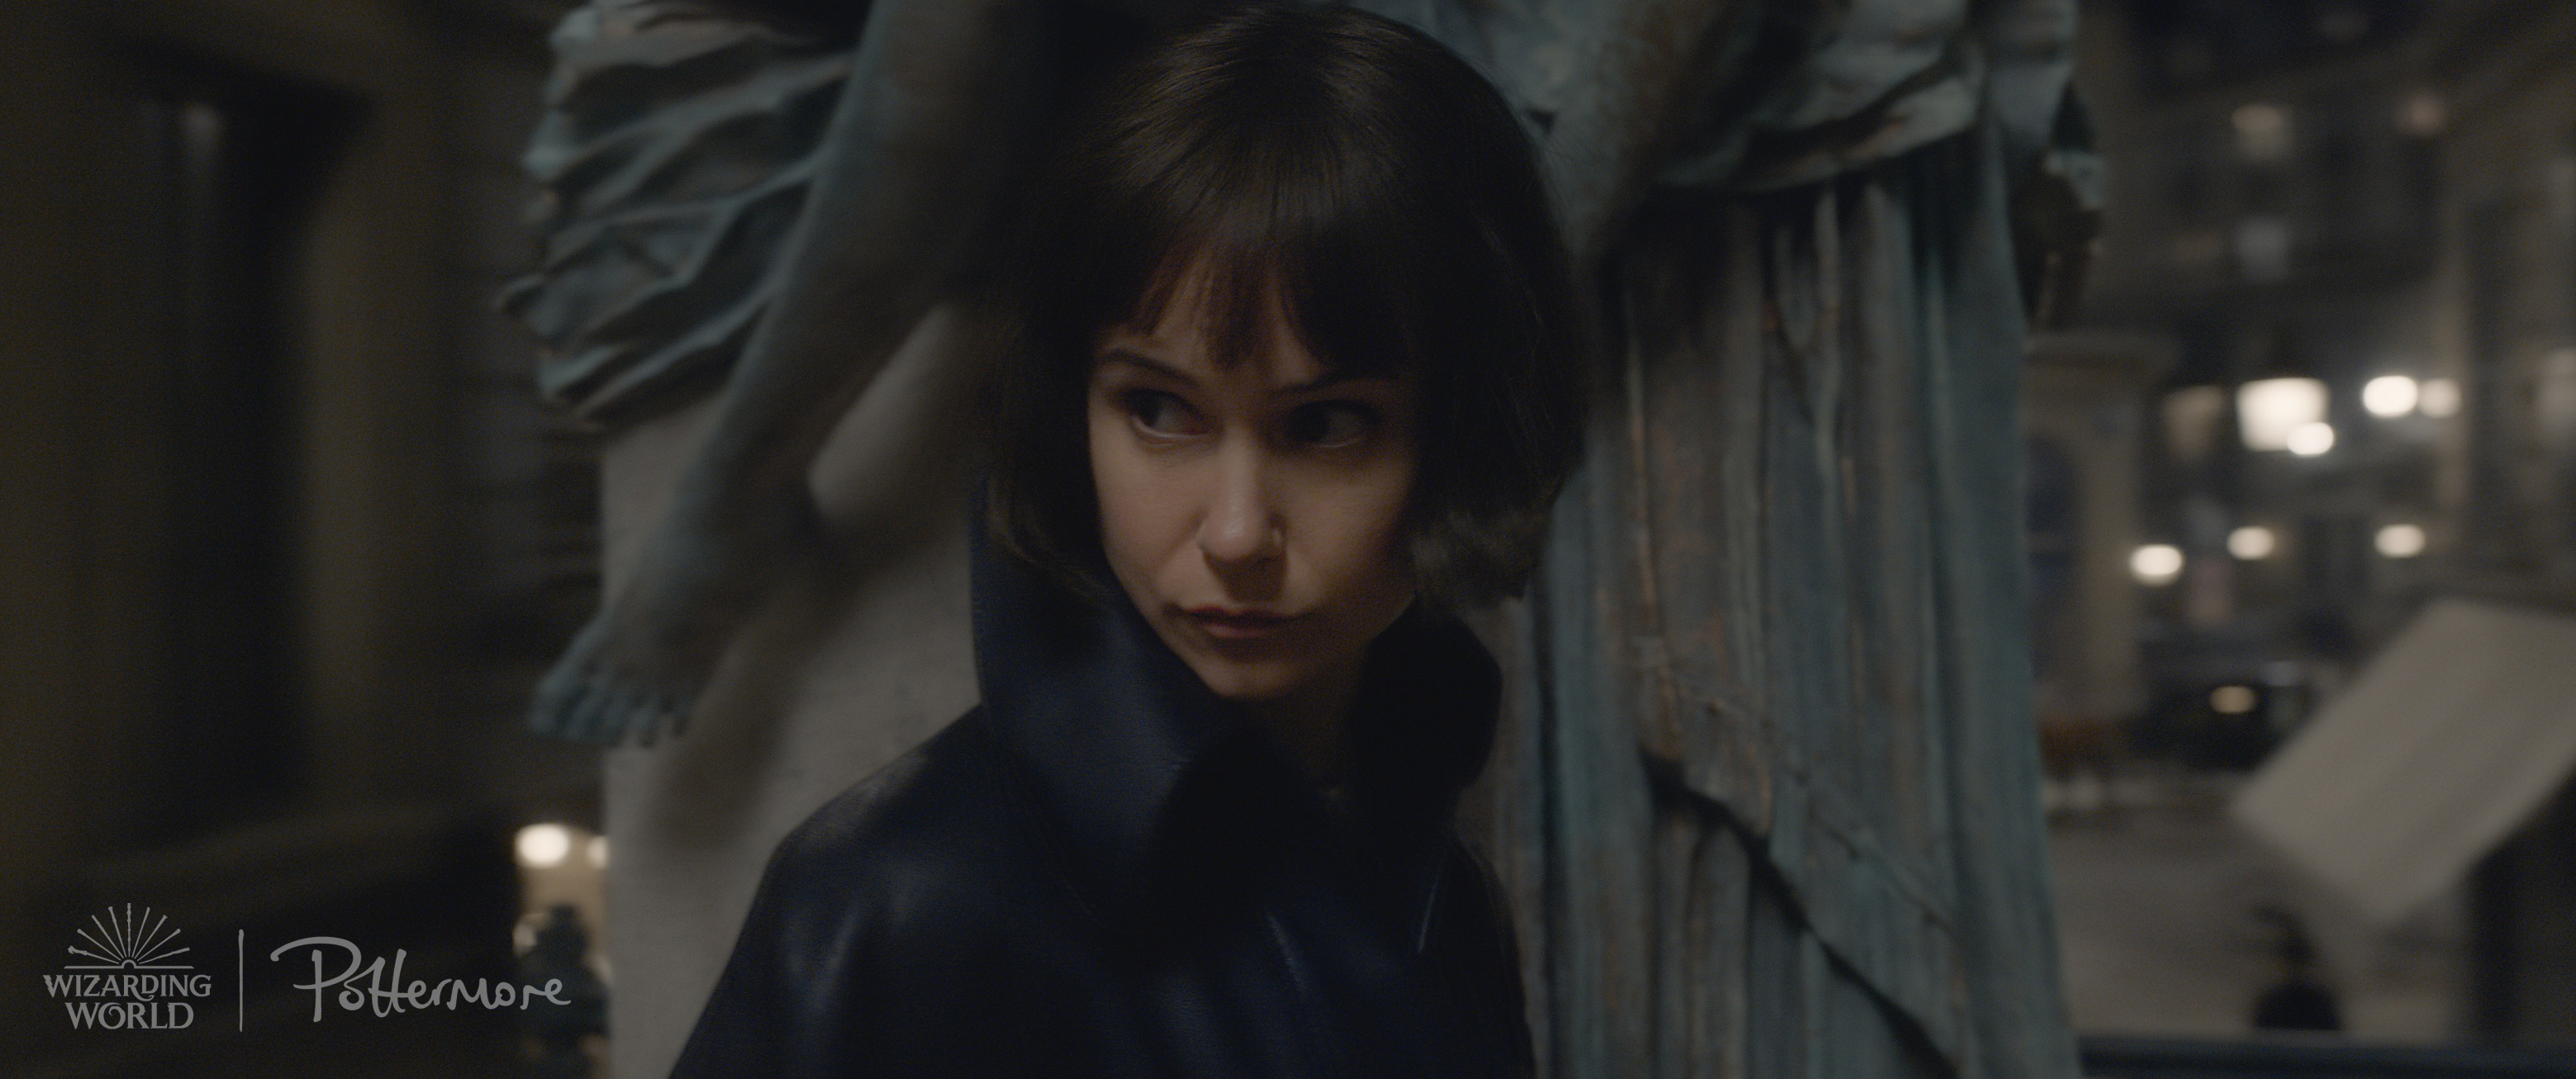 Tina Goldstein in the trailer for Fantastic Beasts: Crimes of Grindelwald